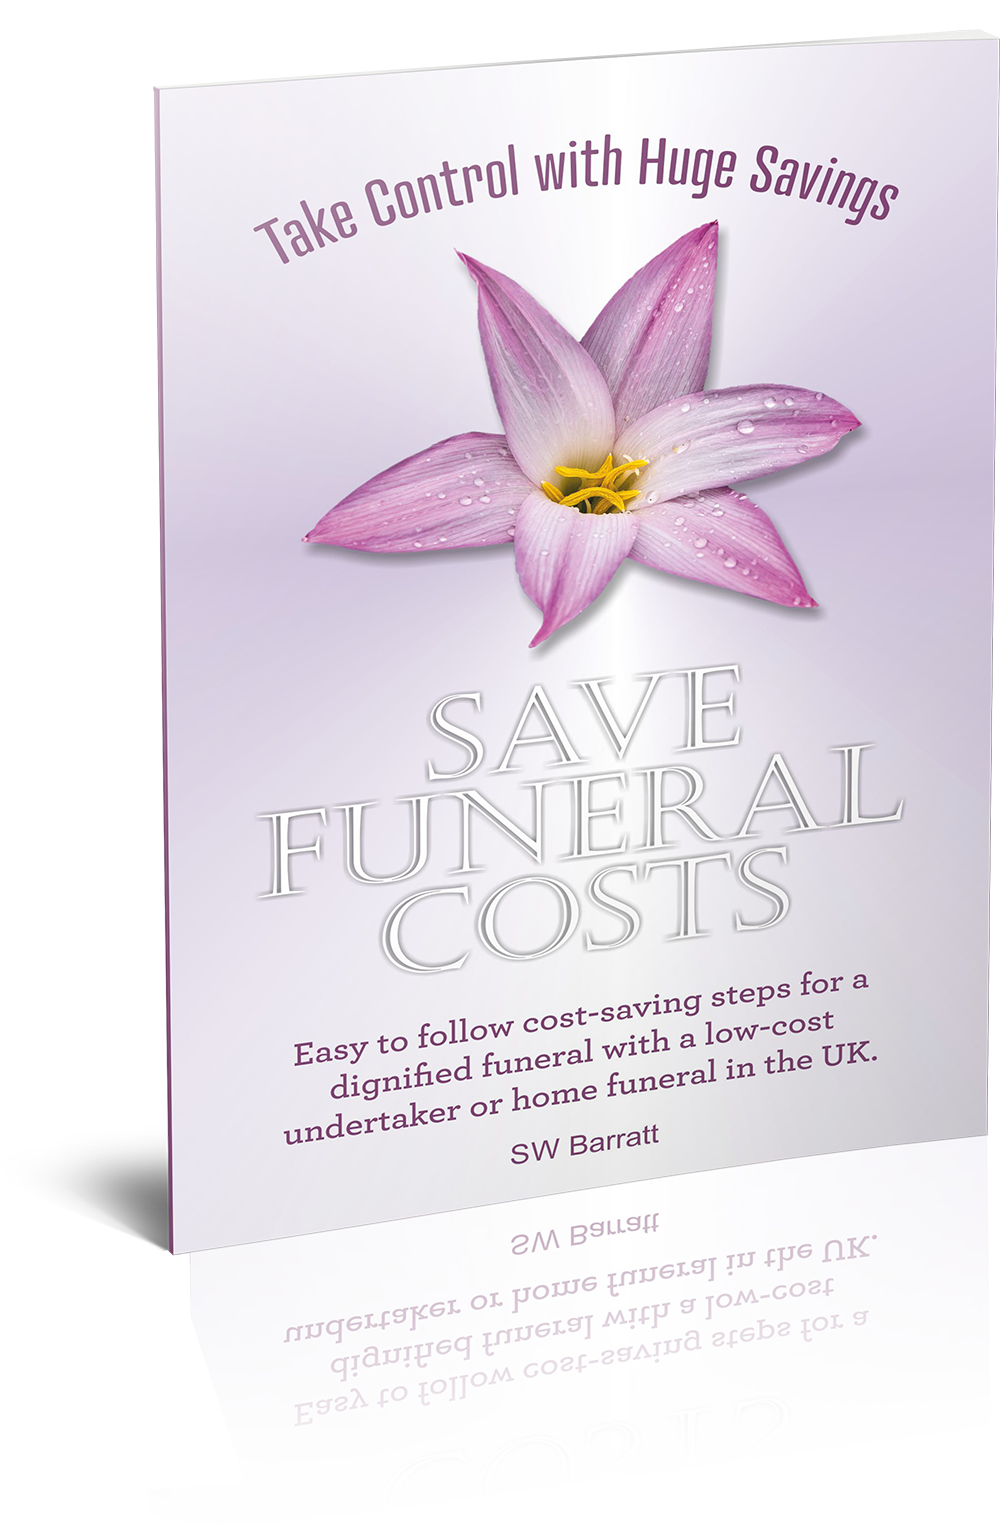 Save Funeral Costs Ebook Mock-up Image